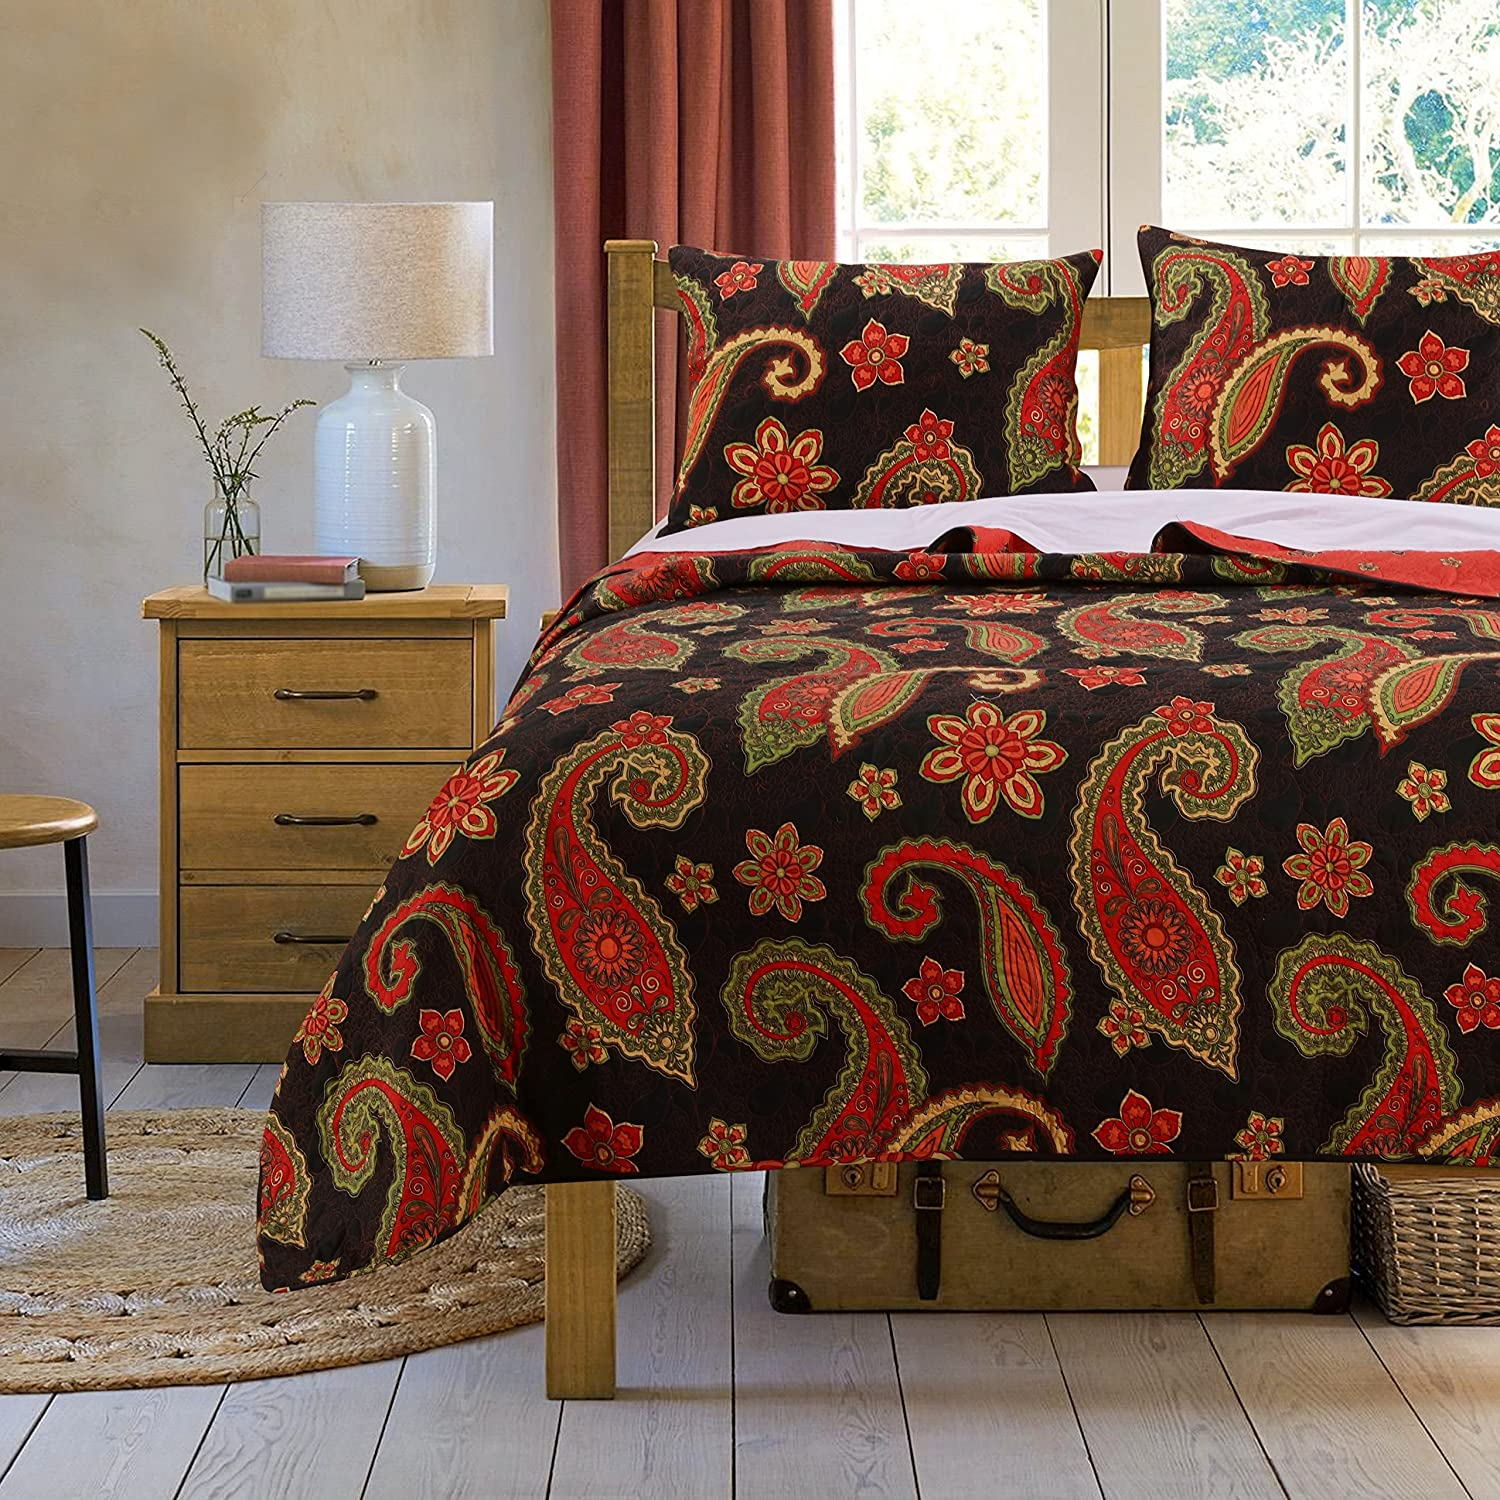 Greenland Home GL-1604AMST Midnight Paisley Quilt Set, 2-Piece Twin